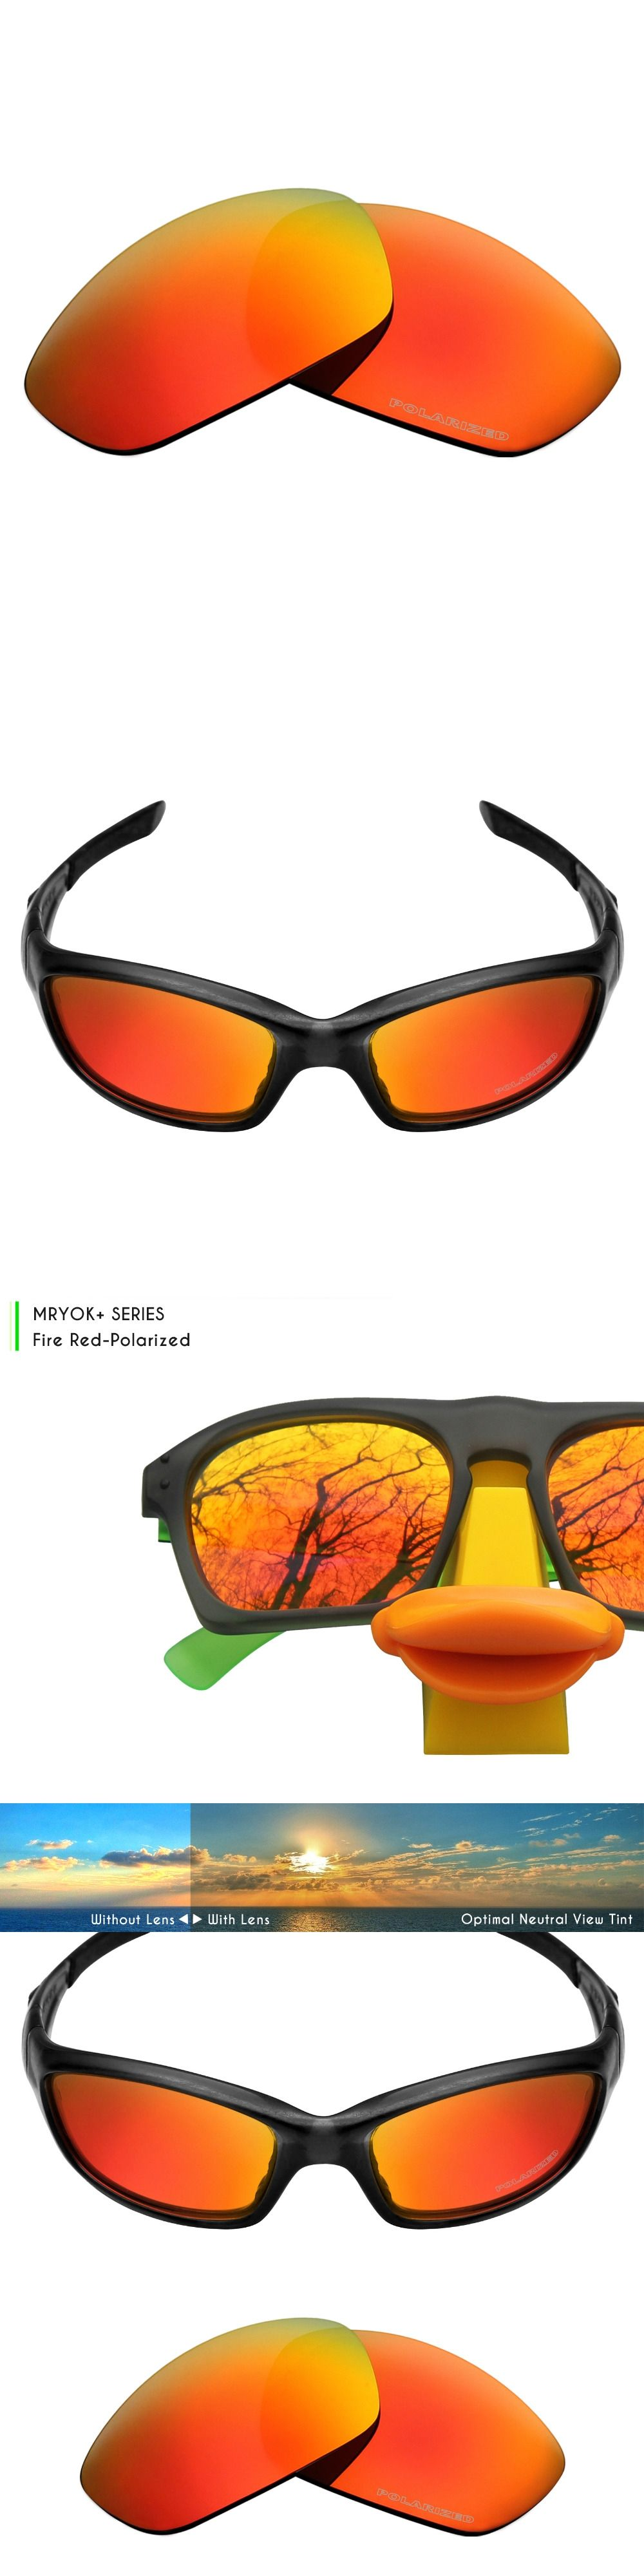 3c4e0a07d65 Mryok+ POLARIZED Resist SeaWater Replacement Lenses for Oakley Straight  Jacket 2007 Sunglasses Fire Red